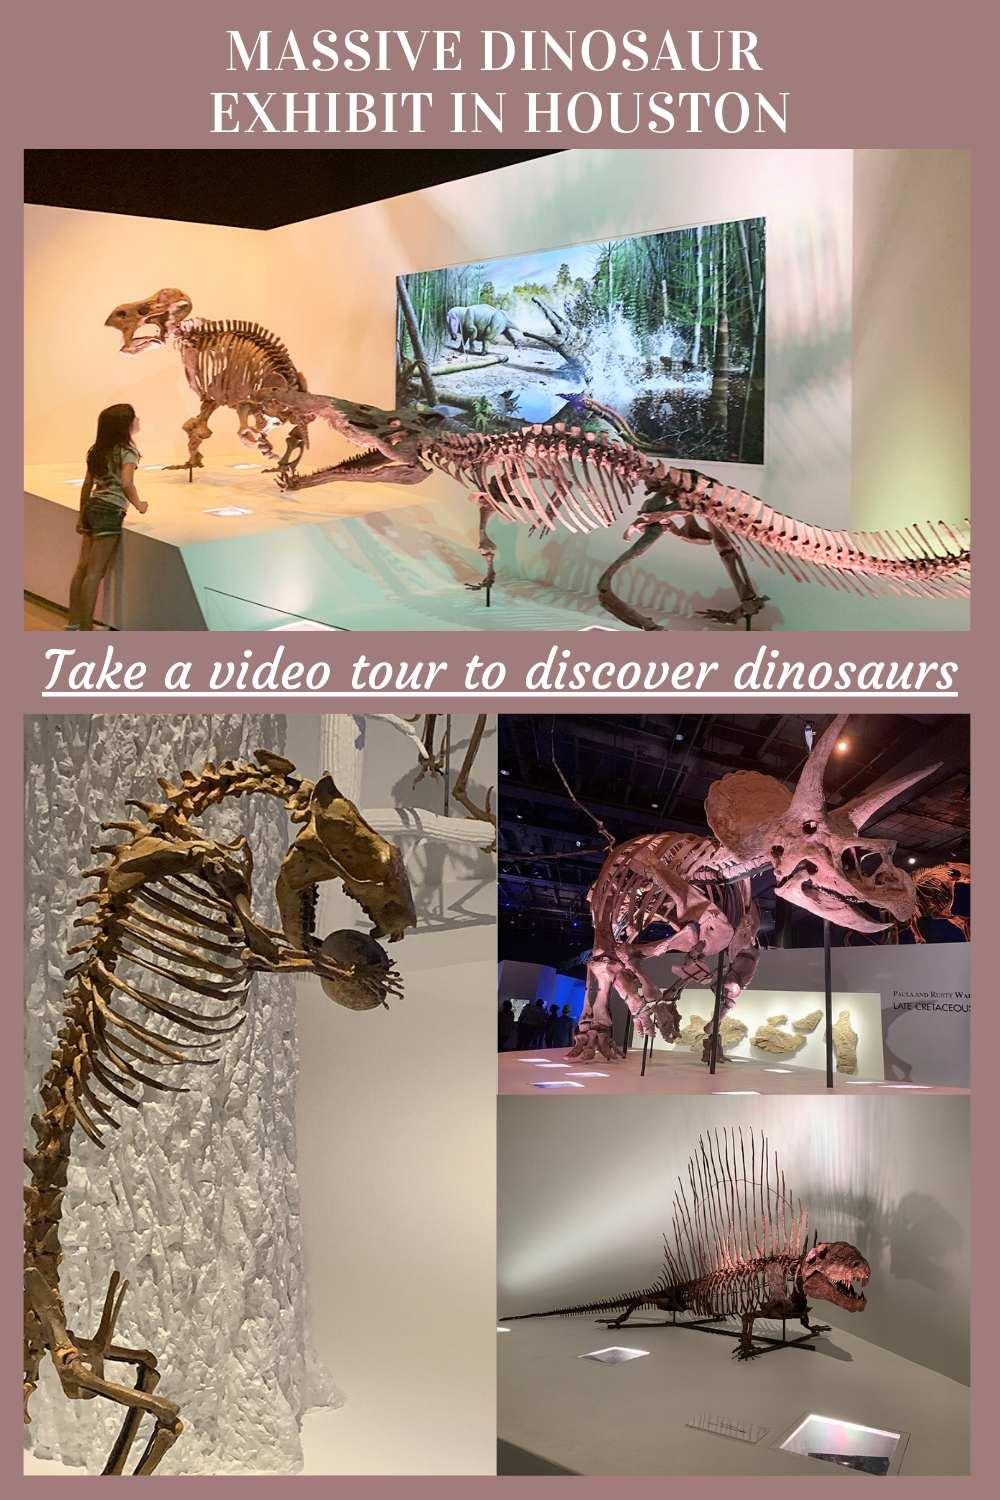 Video: Explore the massive dinosaur exhibit in Houston